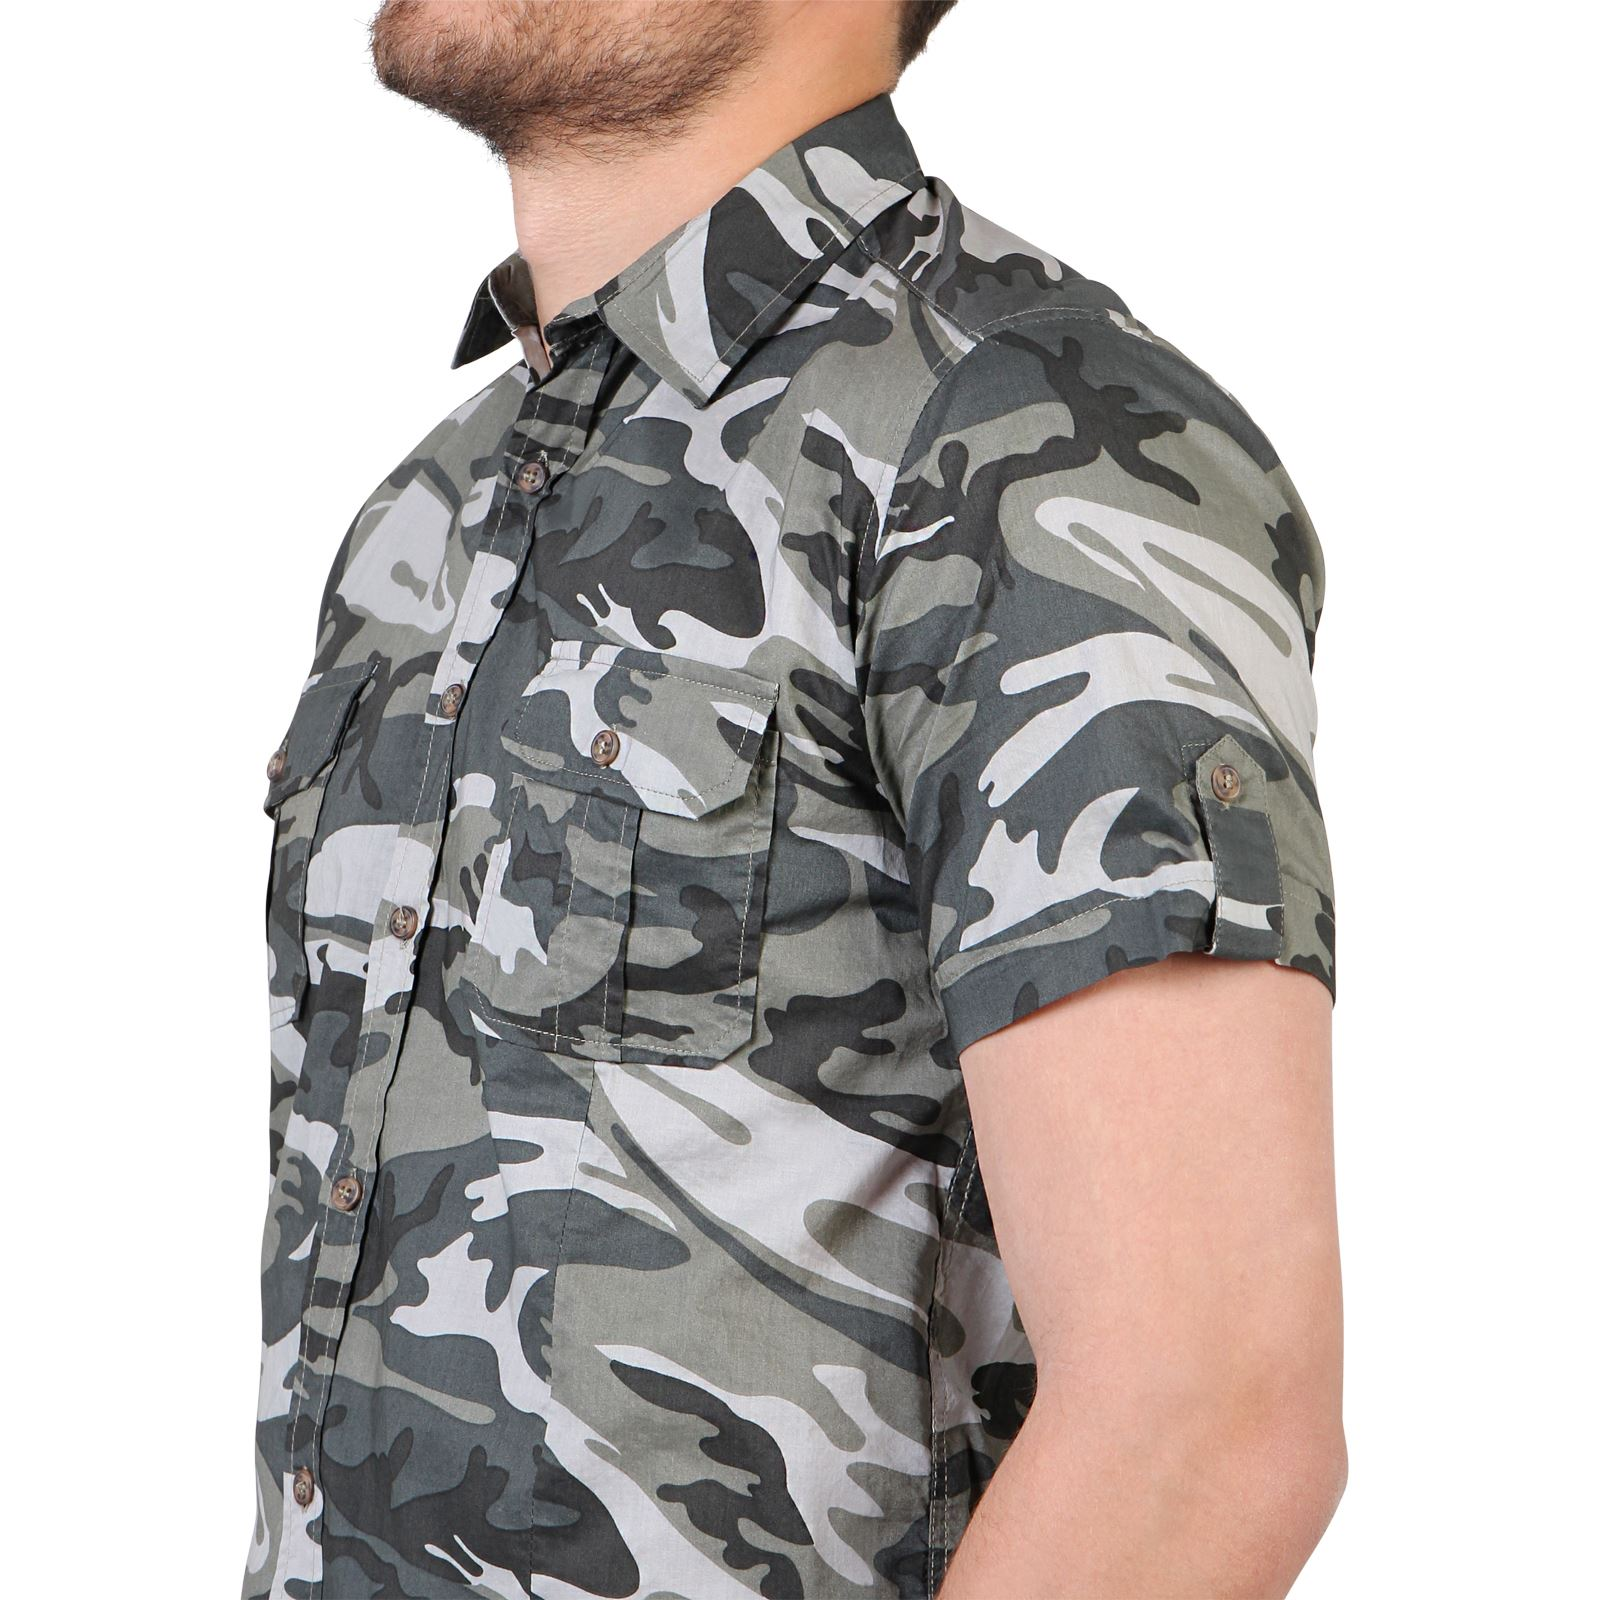 herren camouflage tarnfarben combat kurzarm sommer hemd baumwolle s m l xl xxl ebay. Black Bedroom Furniture Sets. Home Design Ideas